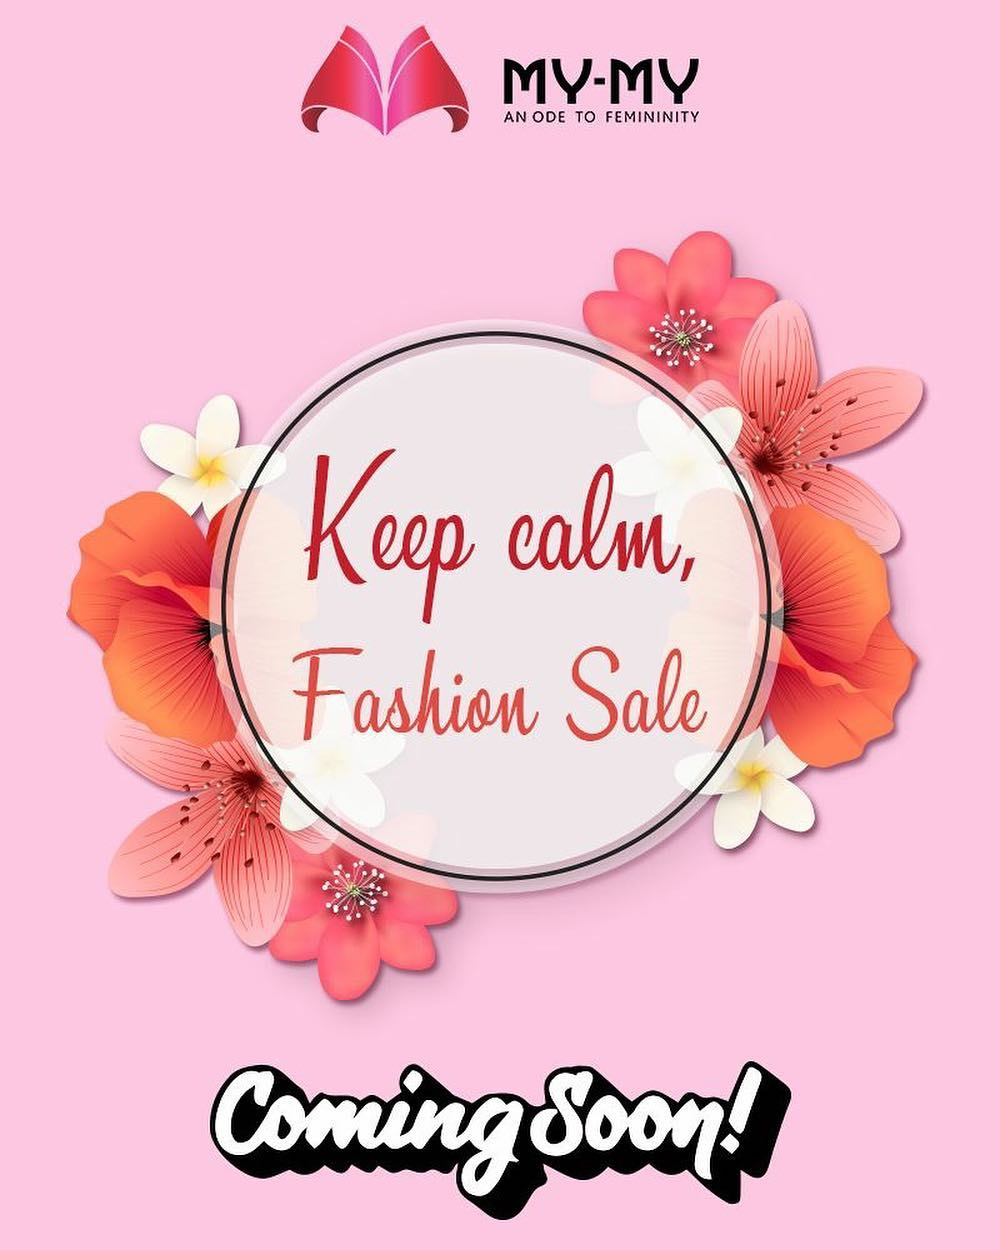 Aren't you waiting for this fashion sale at My-My ?  #MyMy #MyMyAhmedabad #Fashion #Ahmedabad #FemaleFashion